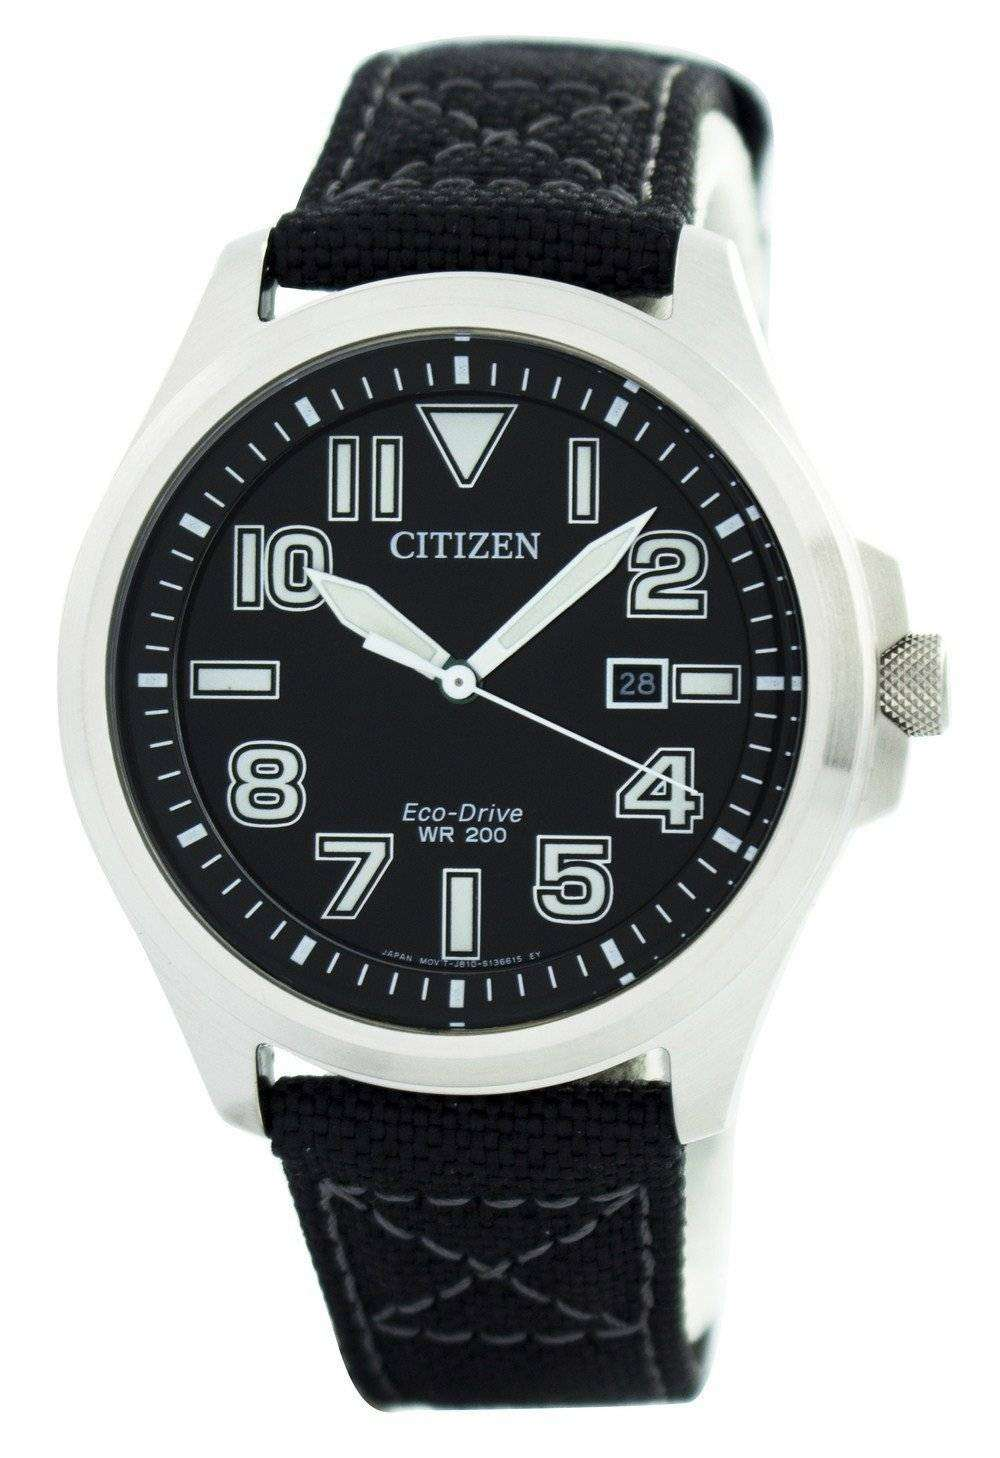 Citizen eco drive military 200m aw1410 24e men 39 s watch downunderwatches for Eco drive watch